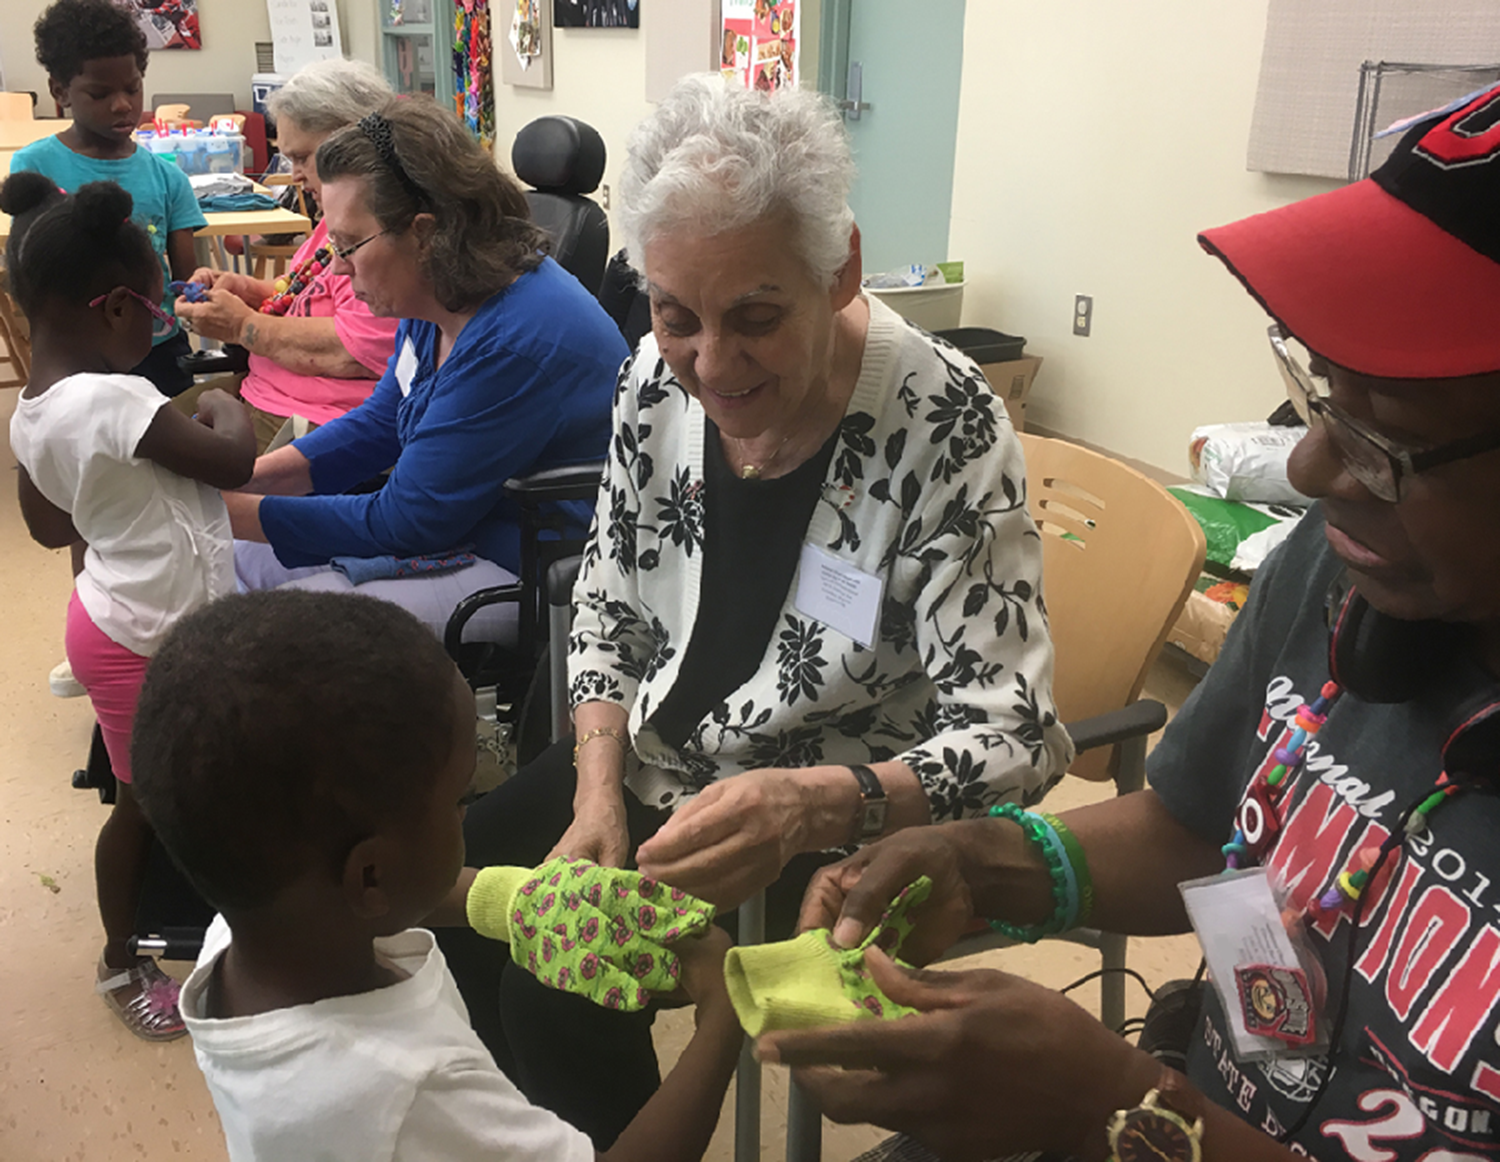 Adults placing gardening gloves on the preschool children's hands.